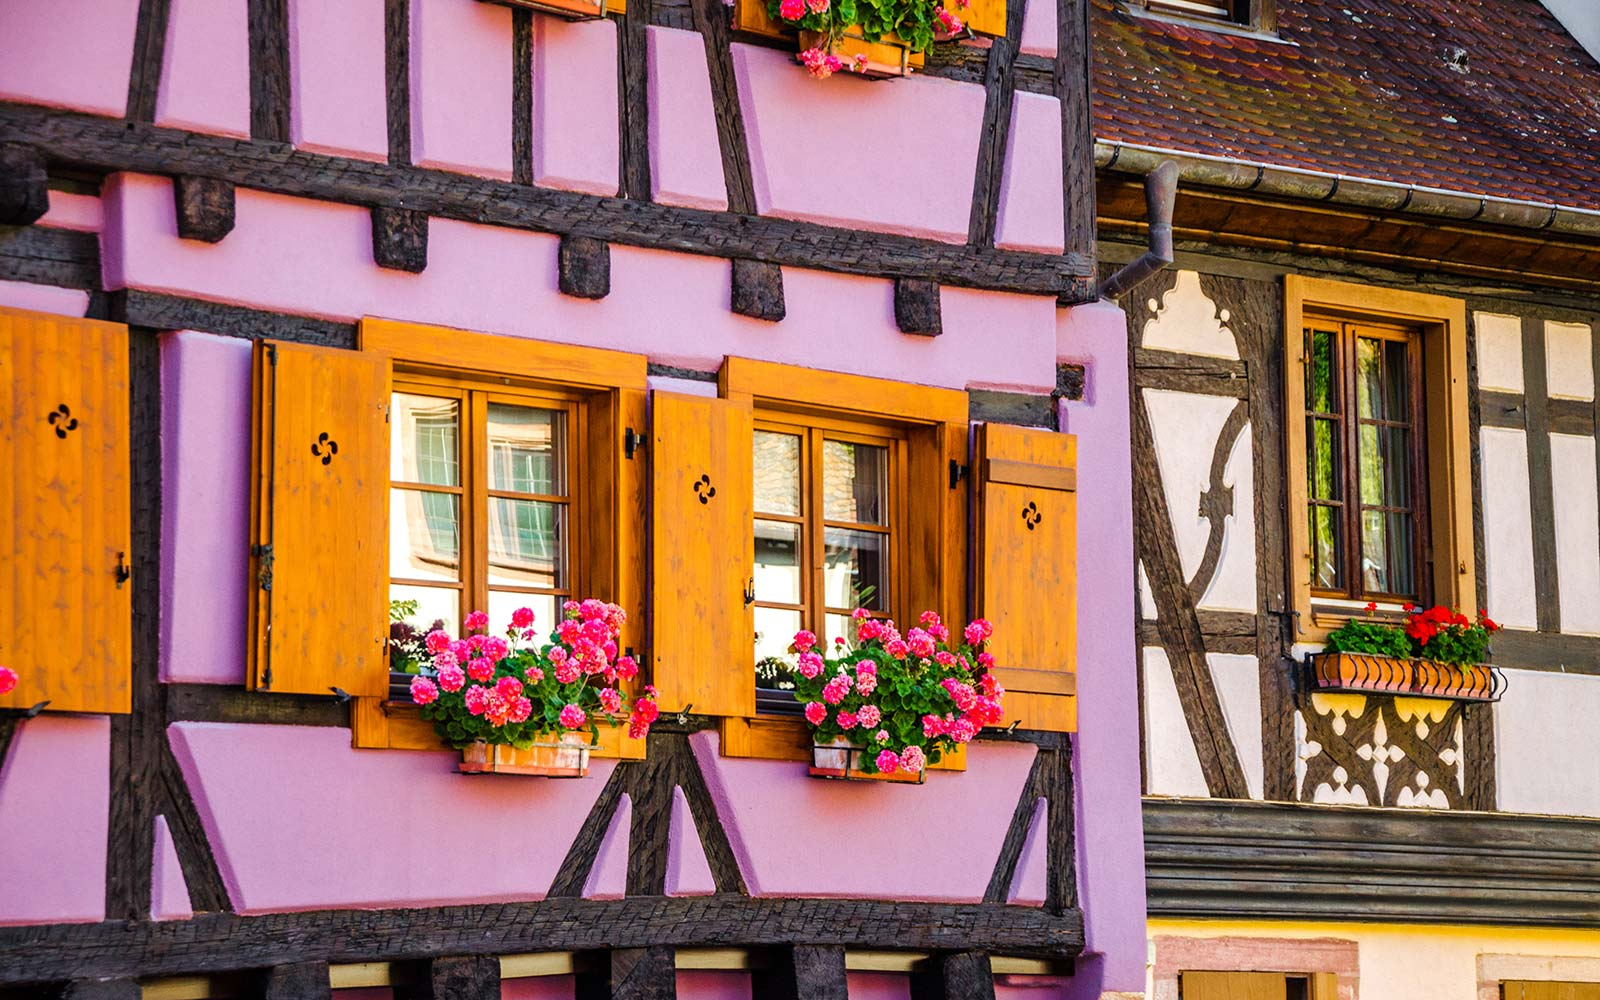 Kaysersberg is a picturesque medieval village located on the  Alsace Wine Route